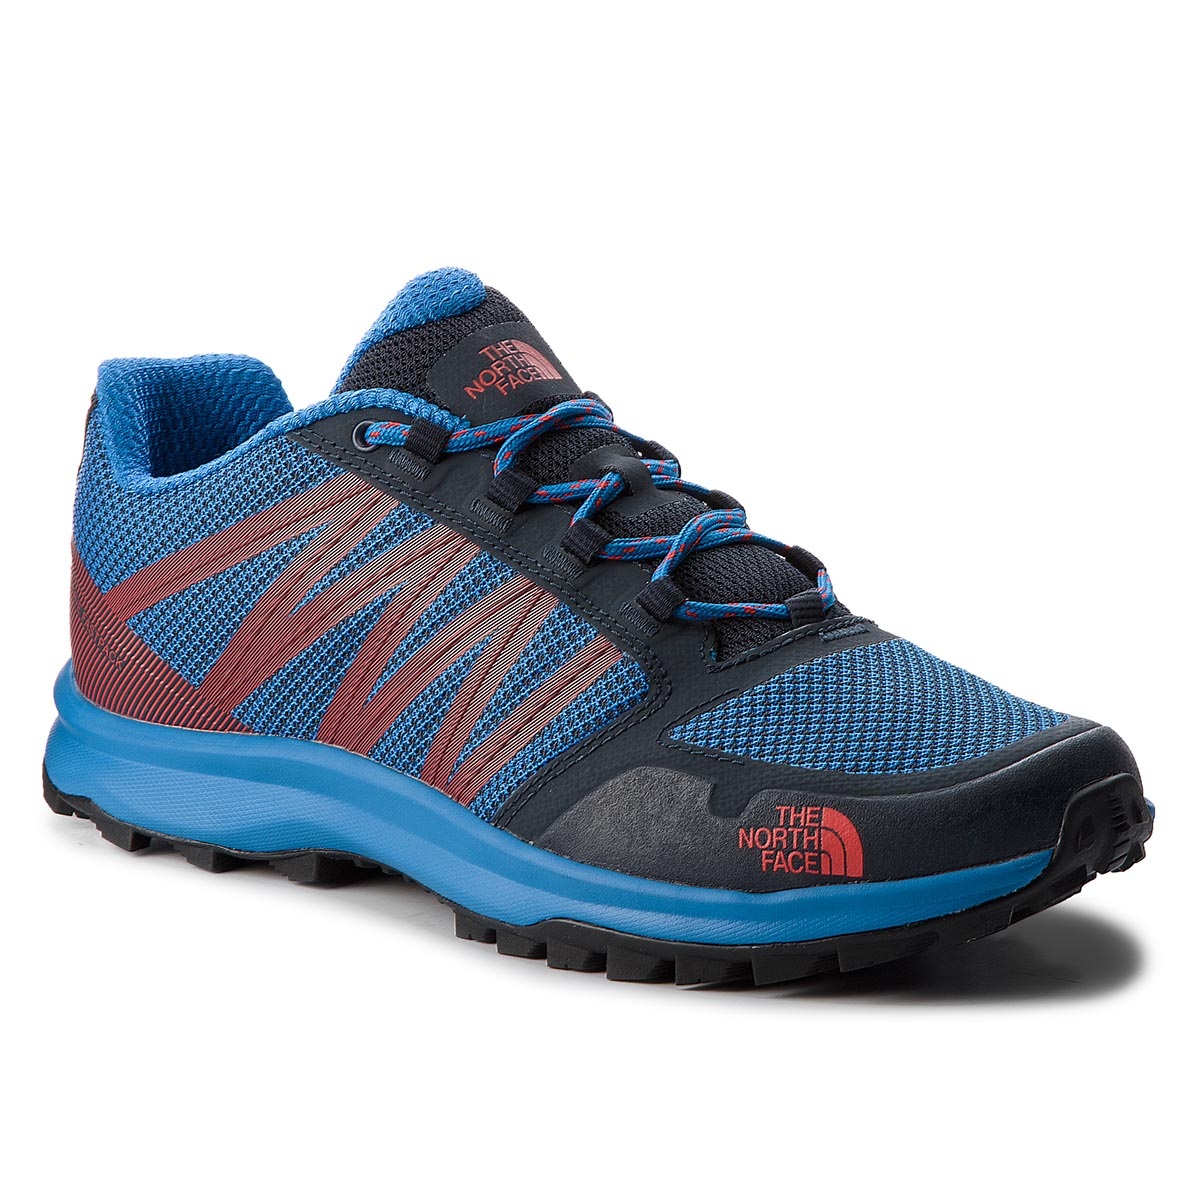 Trekkings THE NORTH FACE - Litewave Fastpack T93FX6THZ Urban Navy/High Risk Red